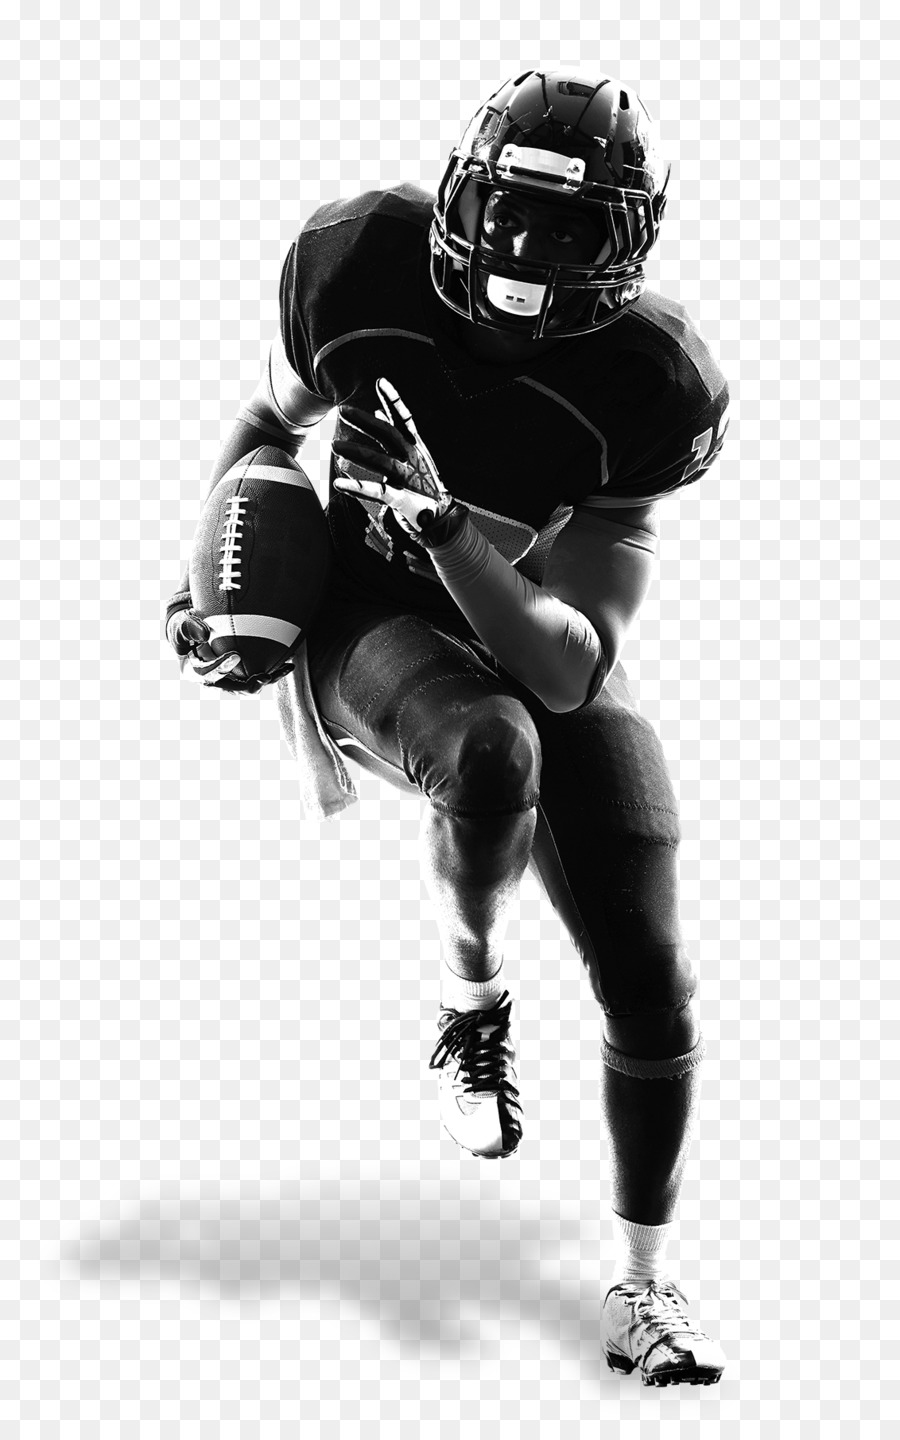 Nfl Football Players Png - American Football Player Png & Free American Football Player.png ...